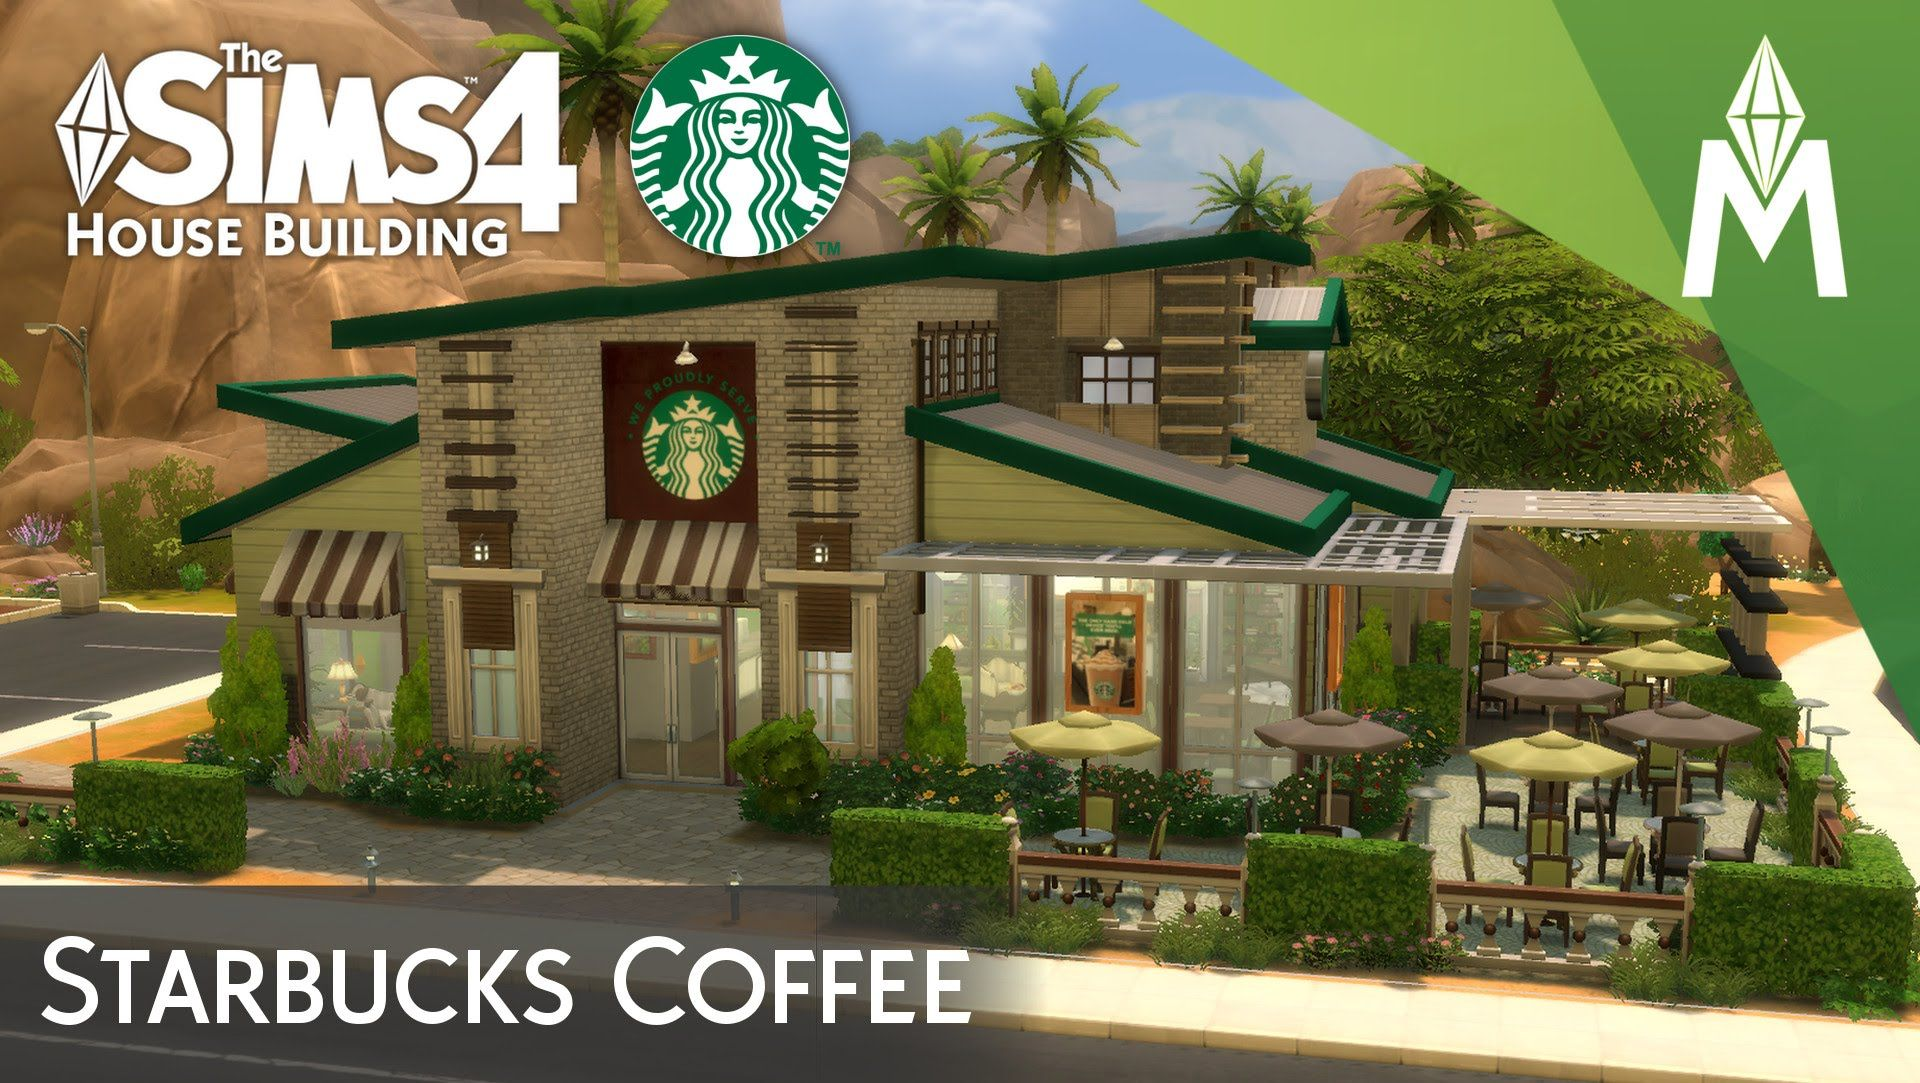 the sims 4 house building starbucks coffee reference for build